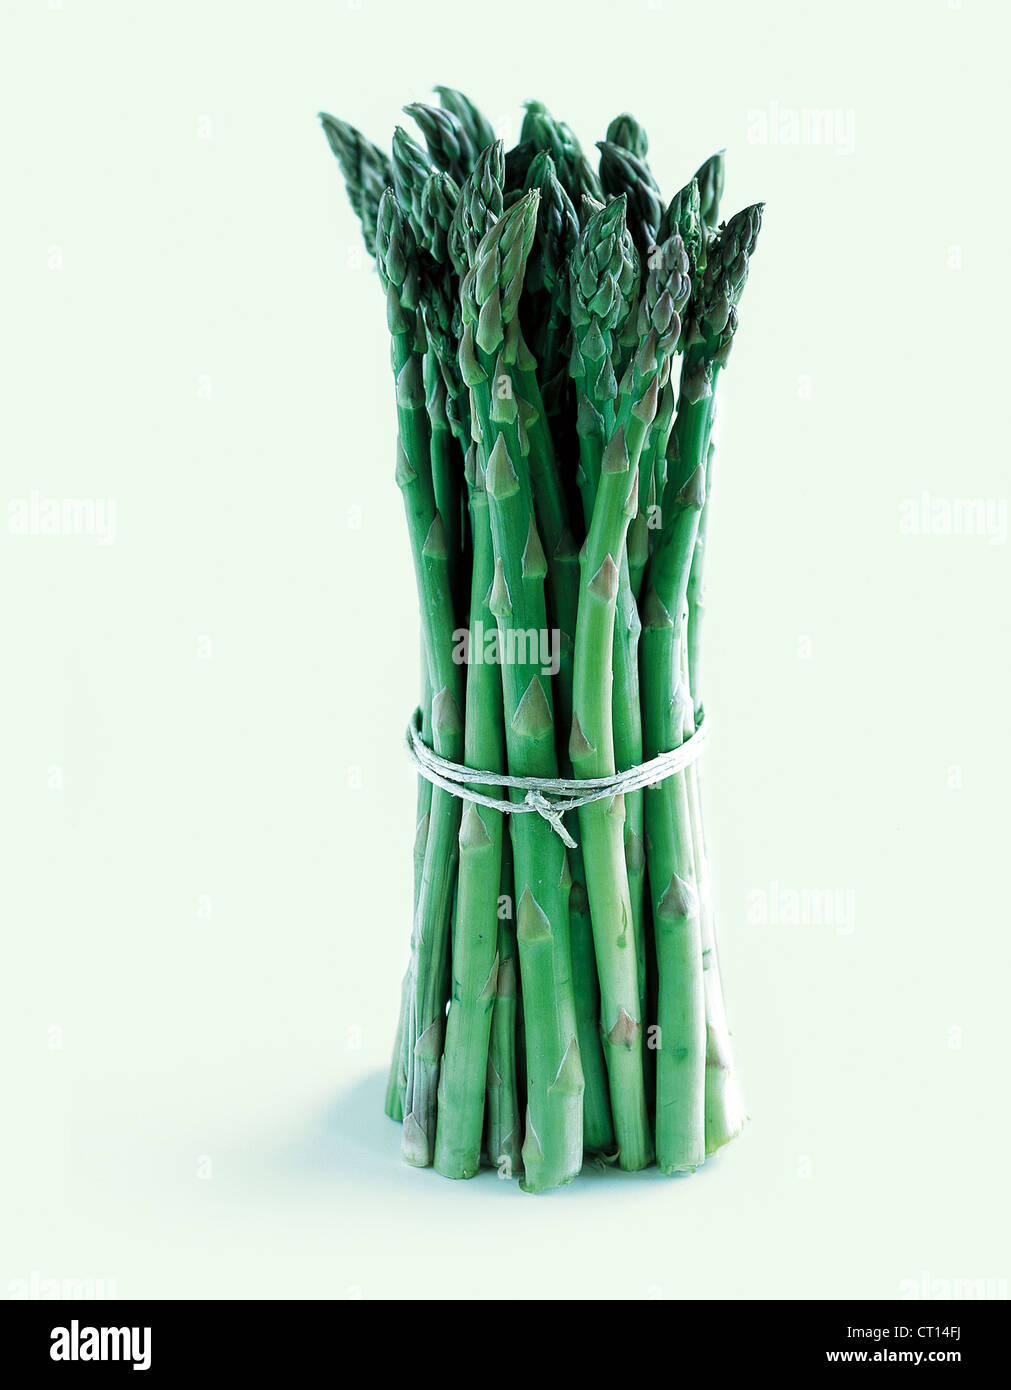 Close up of bunch of asparagus - Stock Image